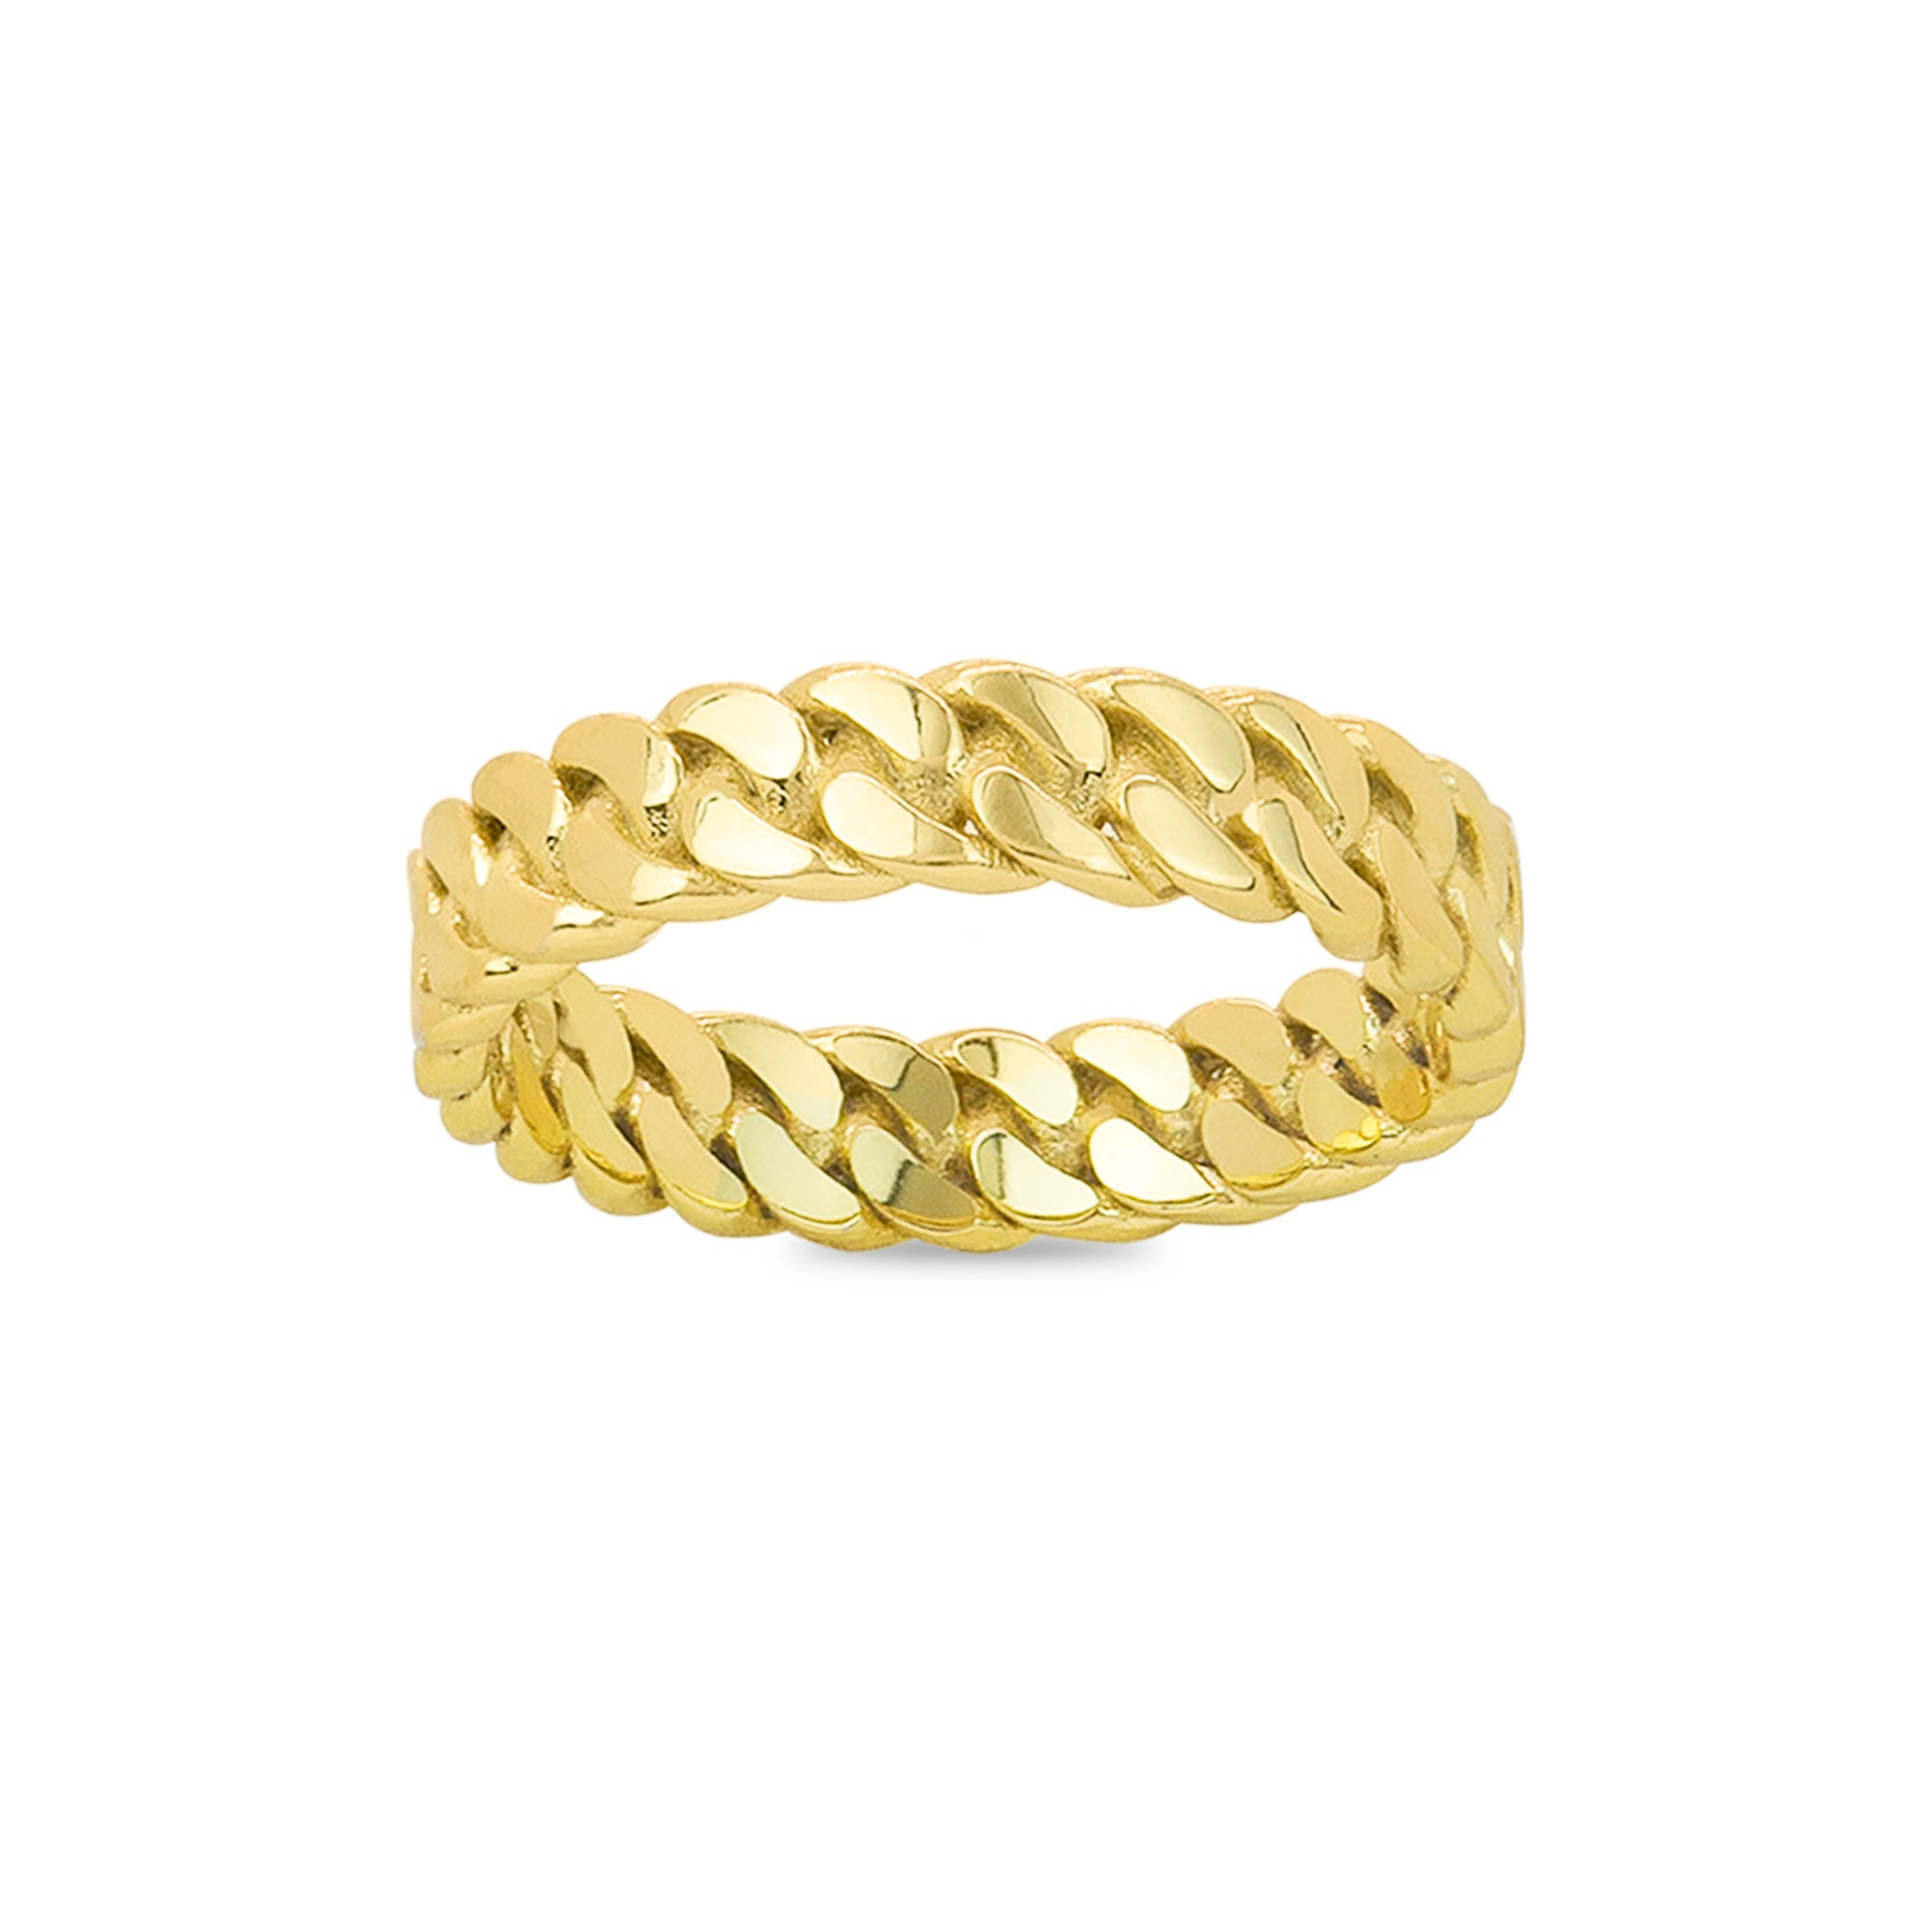 Pismo Lover's Knot Ring - Evertess Jewelry